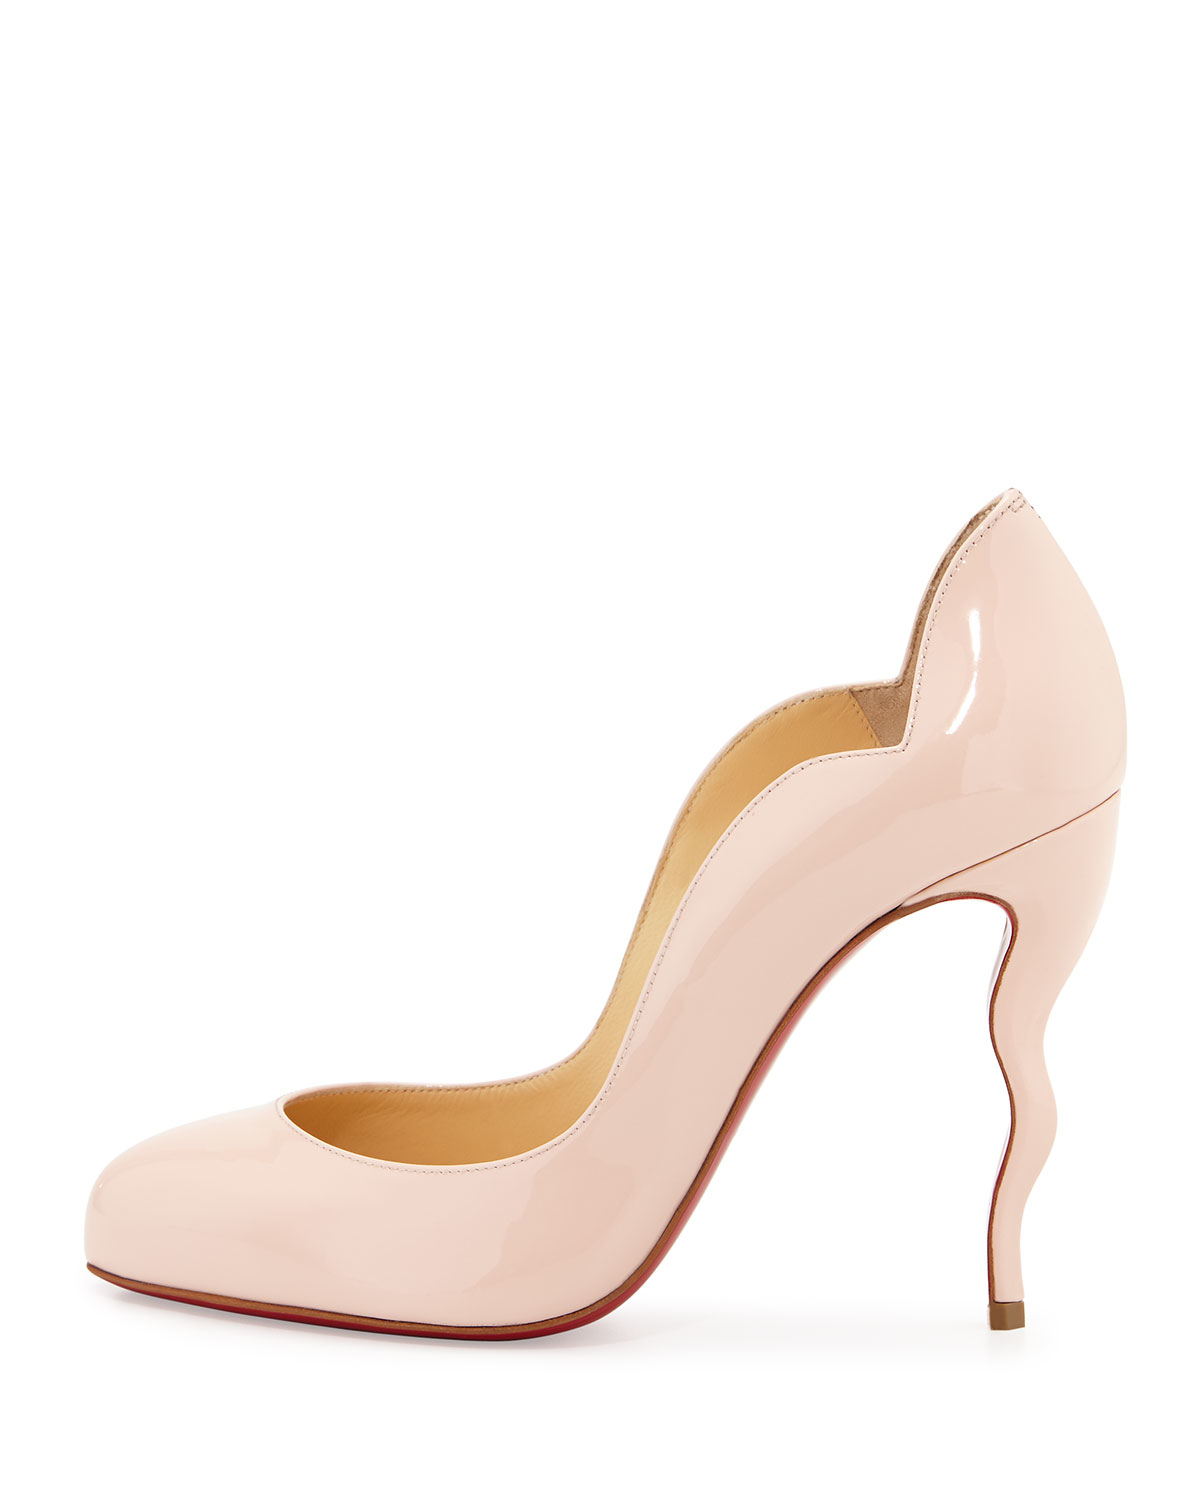 knockoff christian louboutin pumps - christian louboutin round-toe d'Orsay pumps Pink patent leather ...